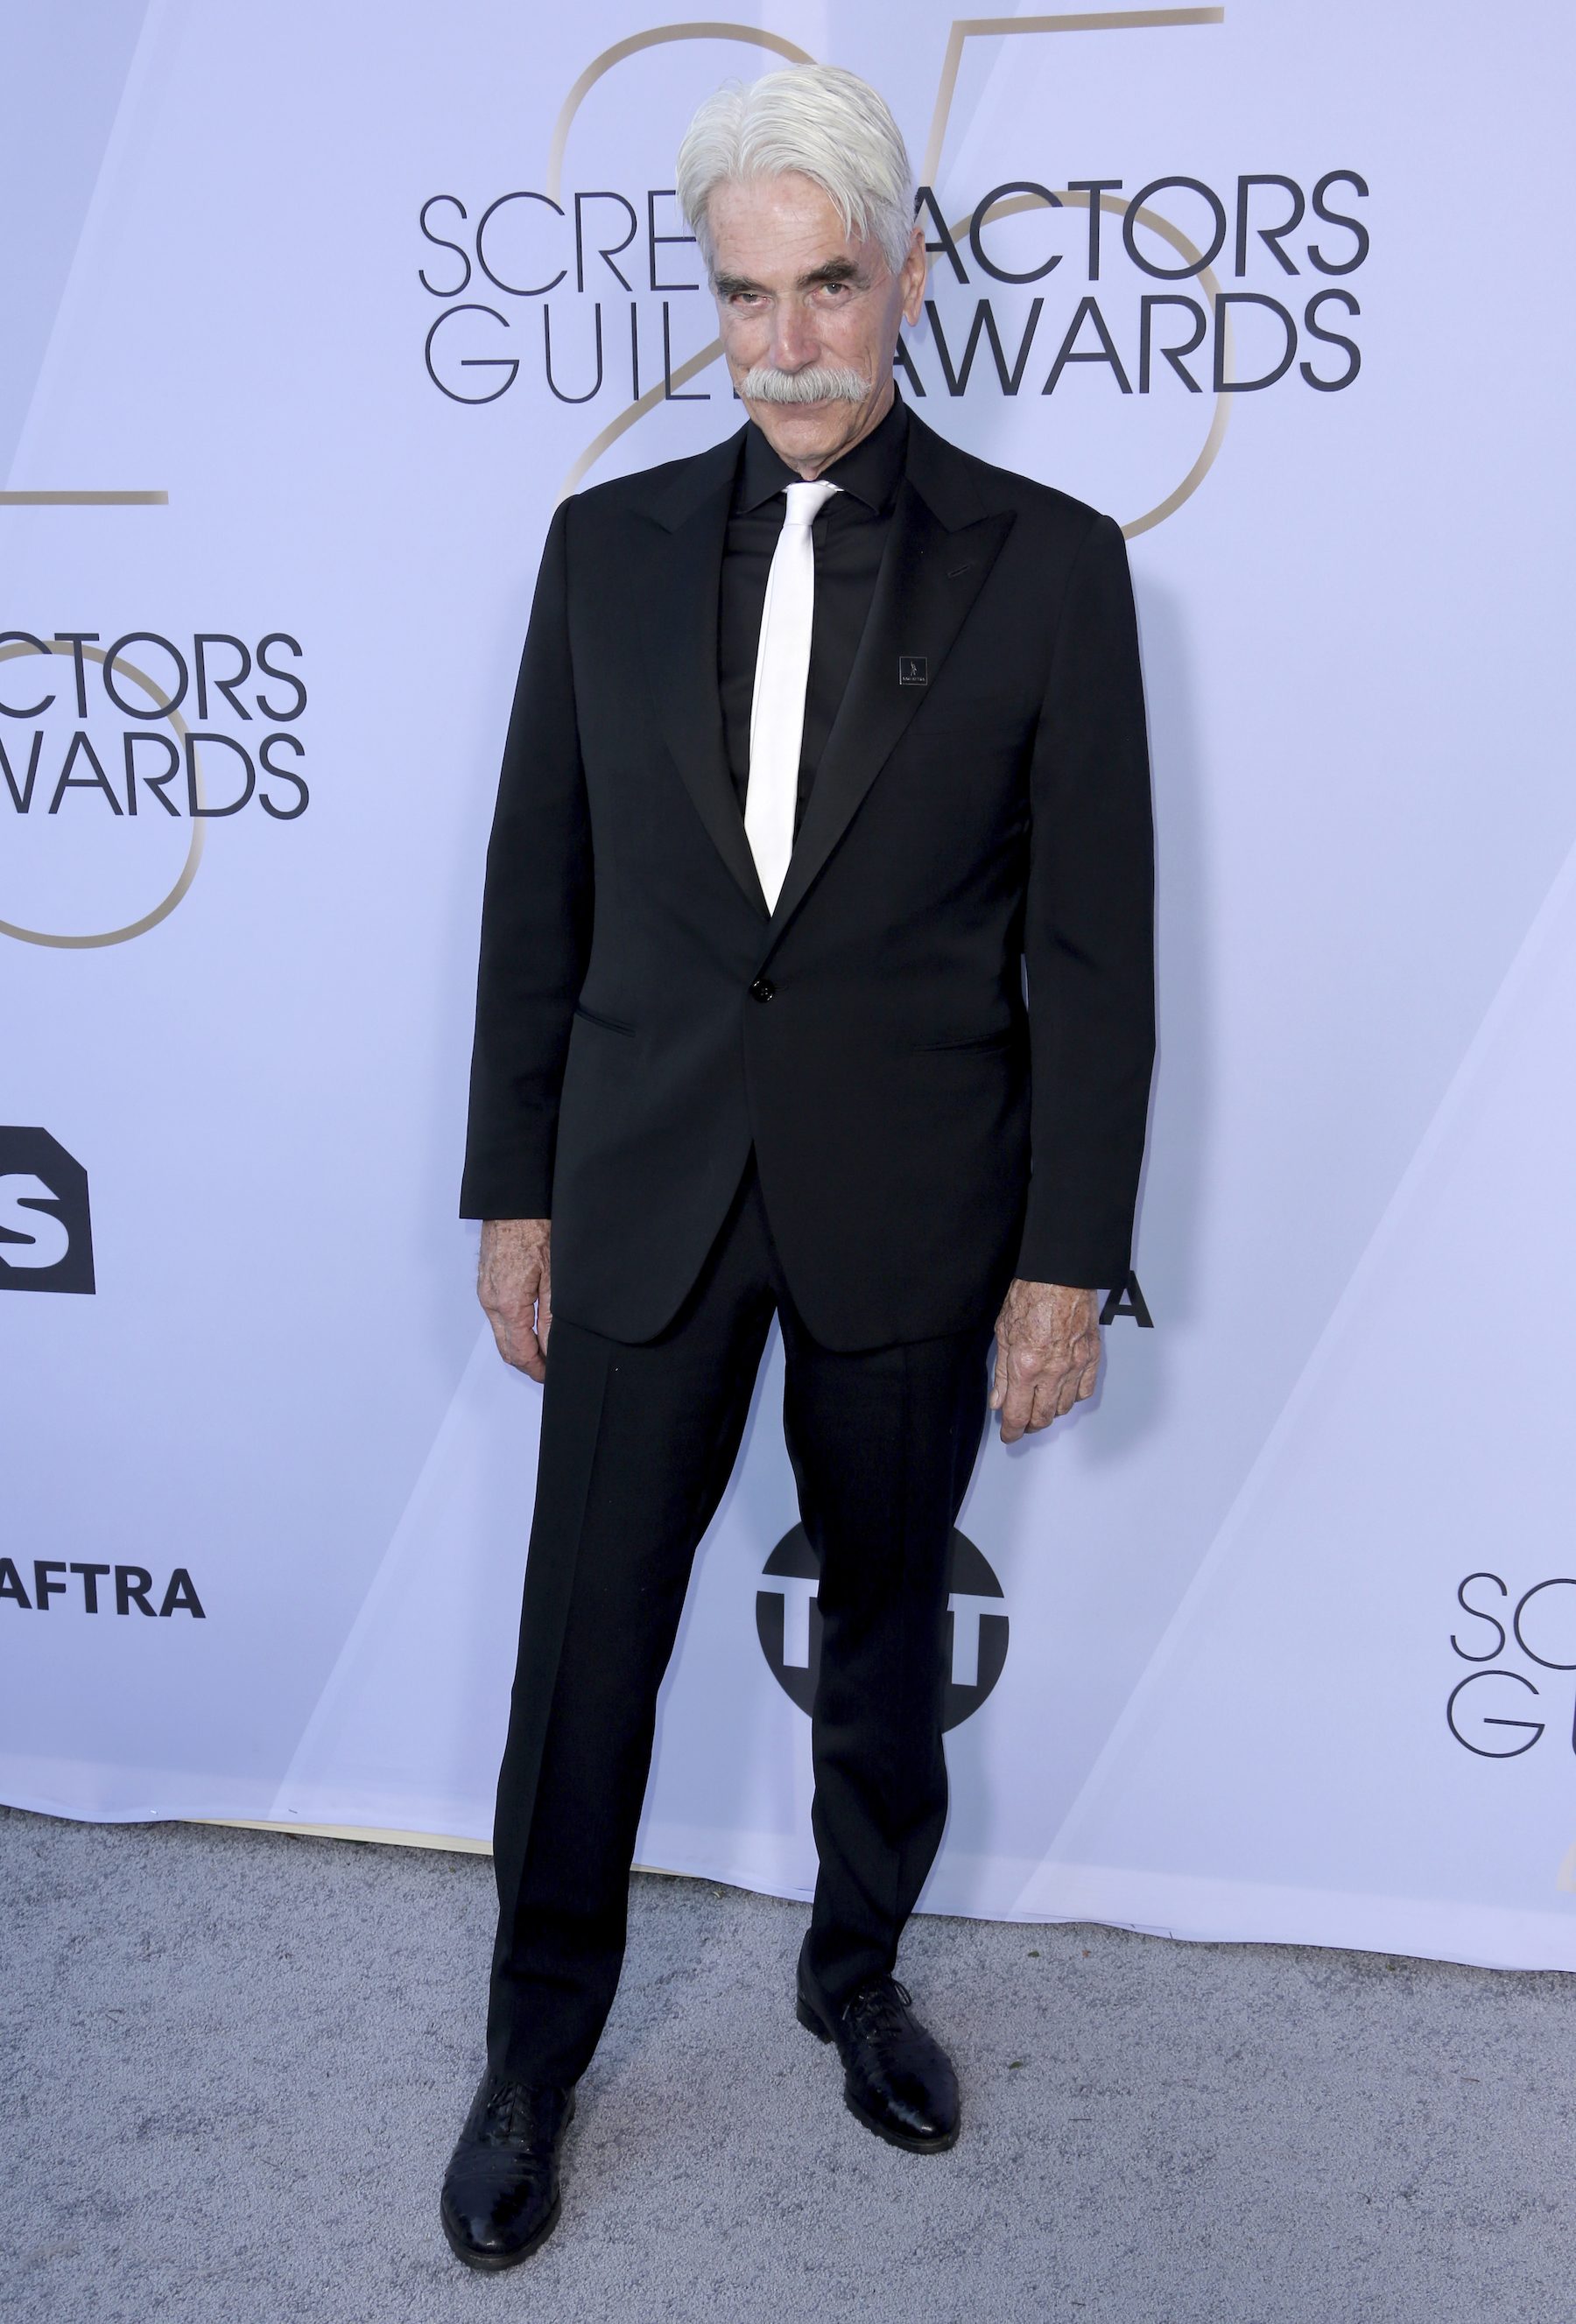 "<div class=""meta image-caption""><div class=""origin-logo origin-image ap""><span>AP</span></div><span class=""caption-text"">Sam Elliott arrives at the 25th annual Screen Actors Guild Awards at the Shrine Auditorium & Expo Hall on Sunday, Jan. 27, 2019, in Los Angeles. (Willy Sanjuan/Invision/AP)</span></div>"